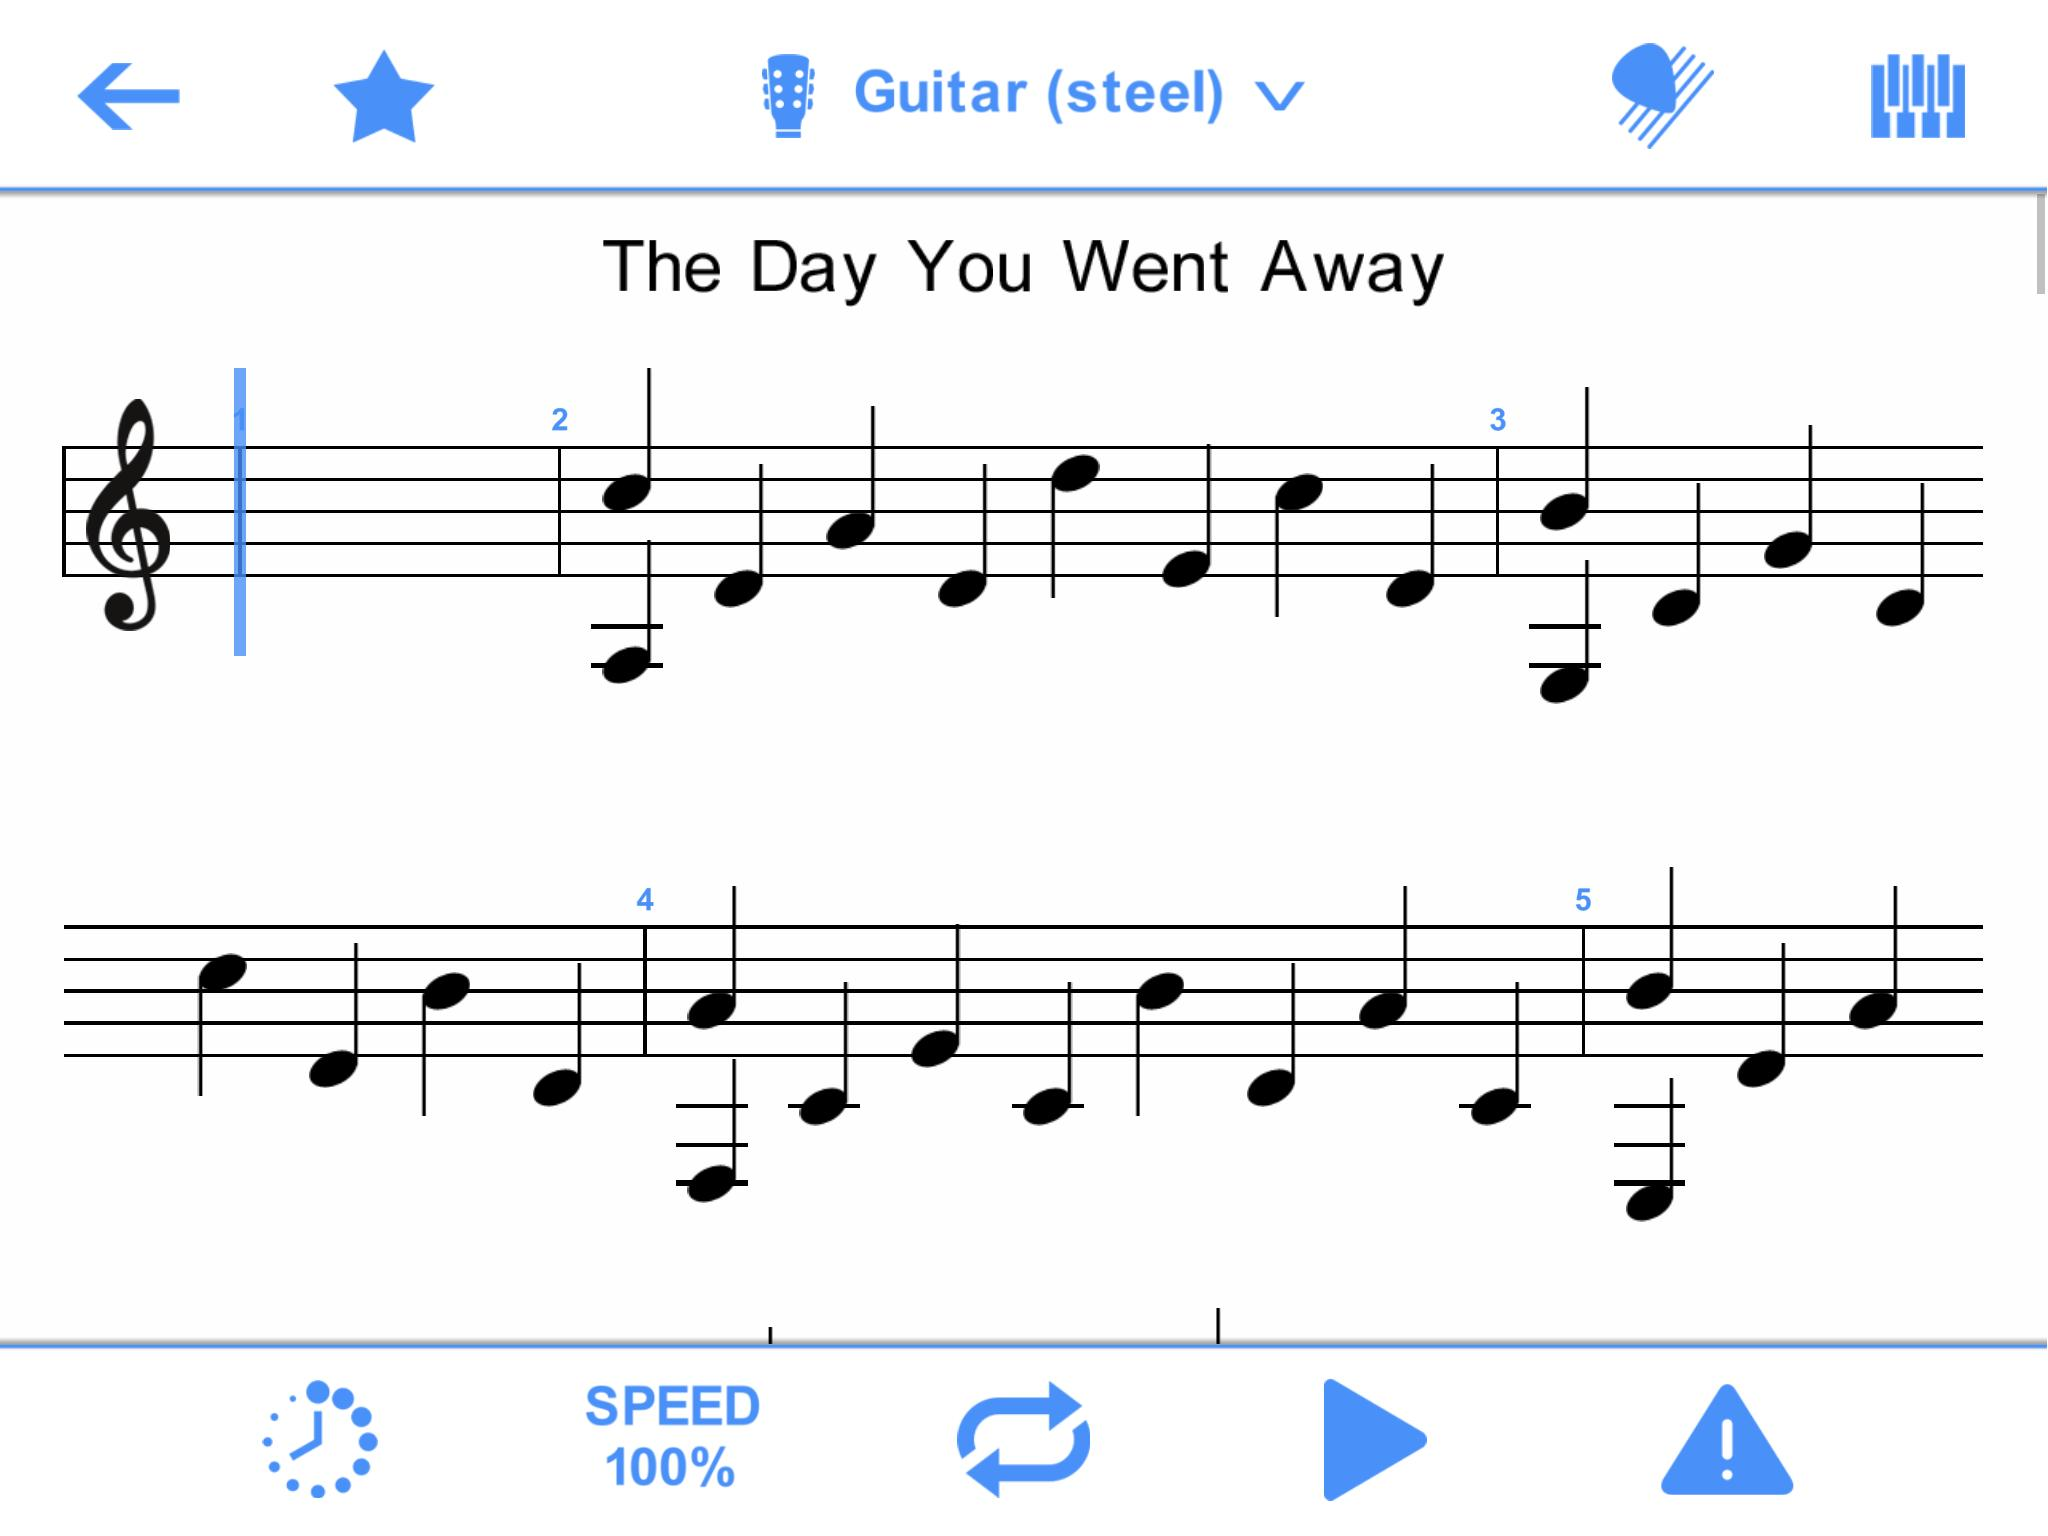 Guitar tabs pro apk free download | Ultimate Guitar Tabs and Chords